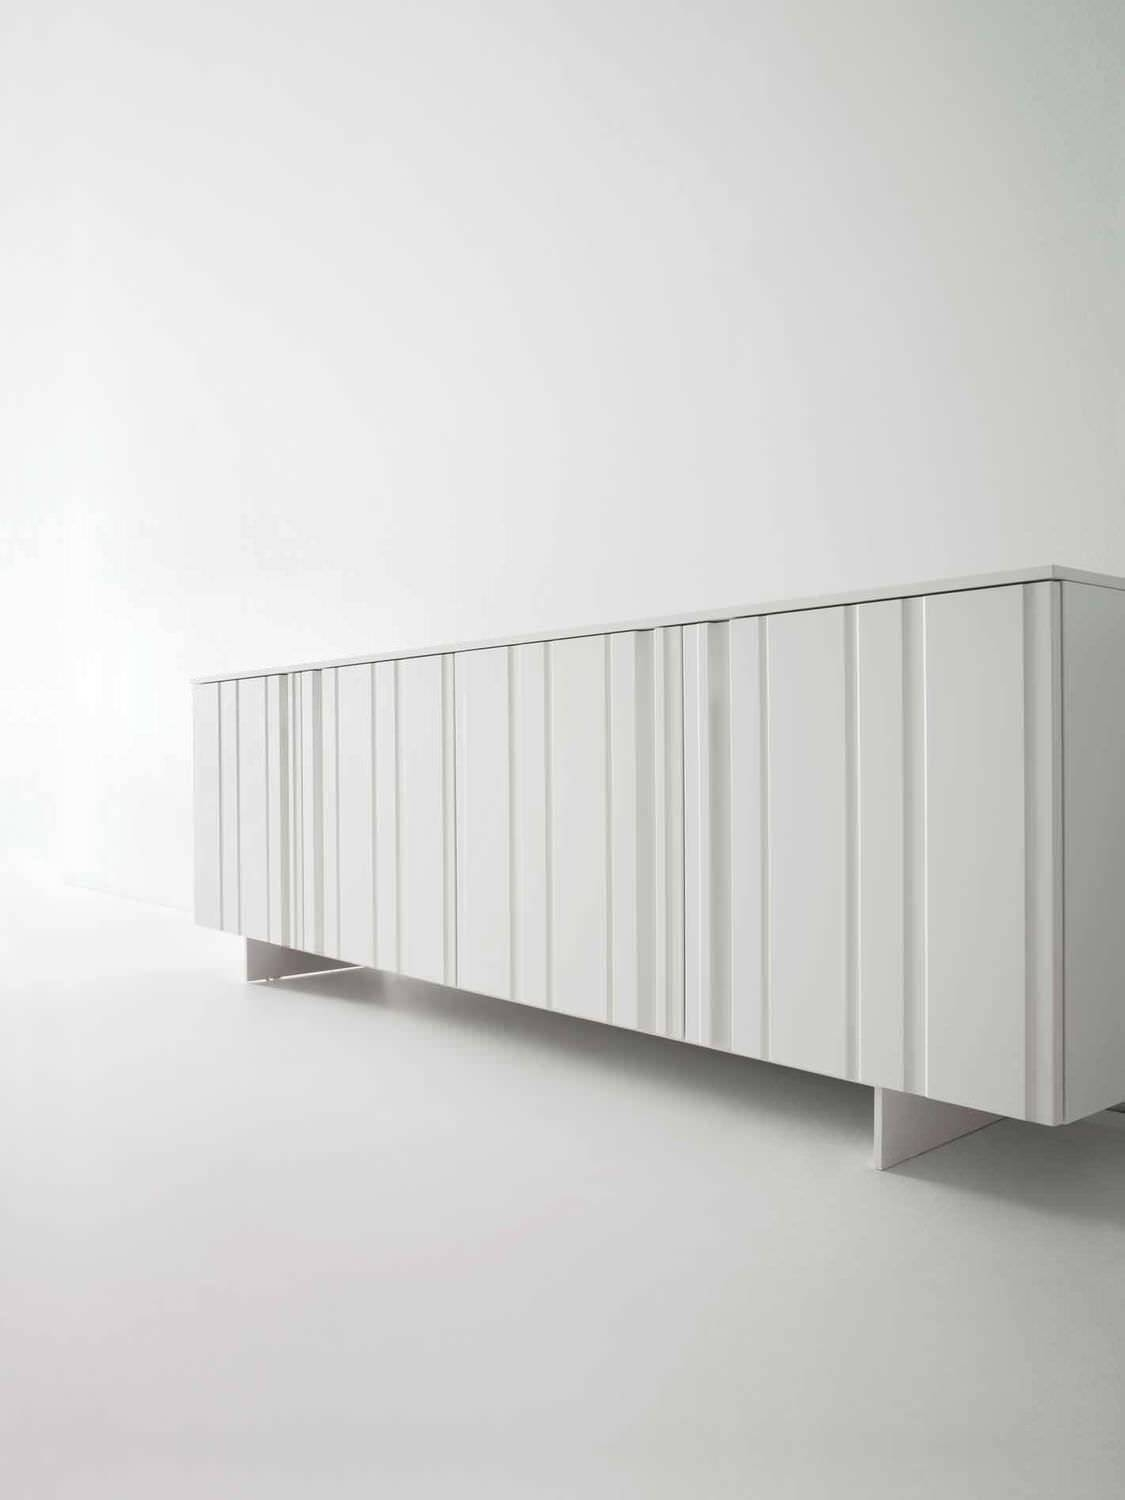 Contemporary Sideboard / Wooden / Lacquered Wood / White - Design regarding White Contemporary Sideboards (Image 5 of 30)